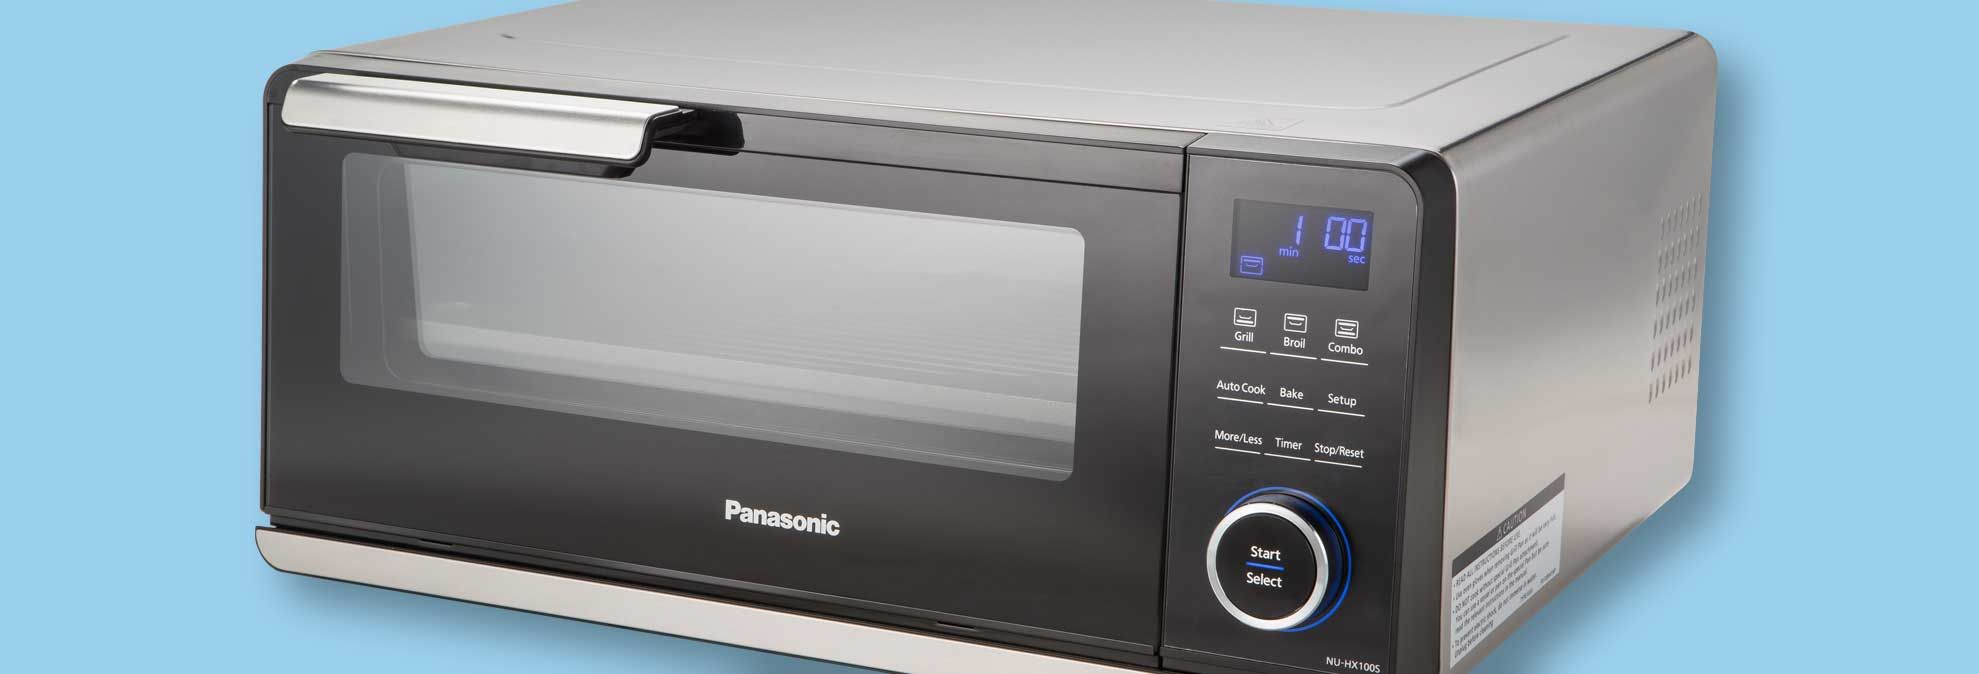 New Panasonic Countertop Induction Oven Speeds Cooking Induction